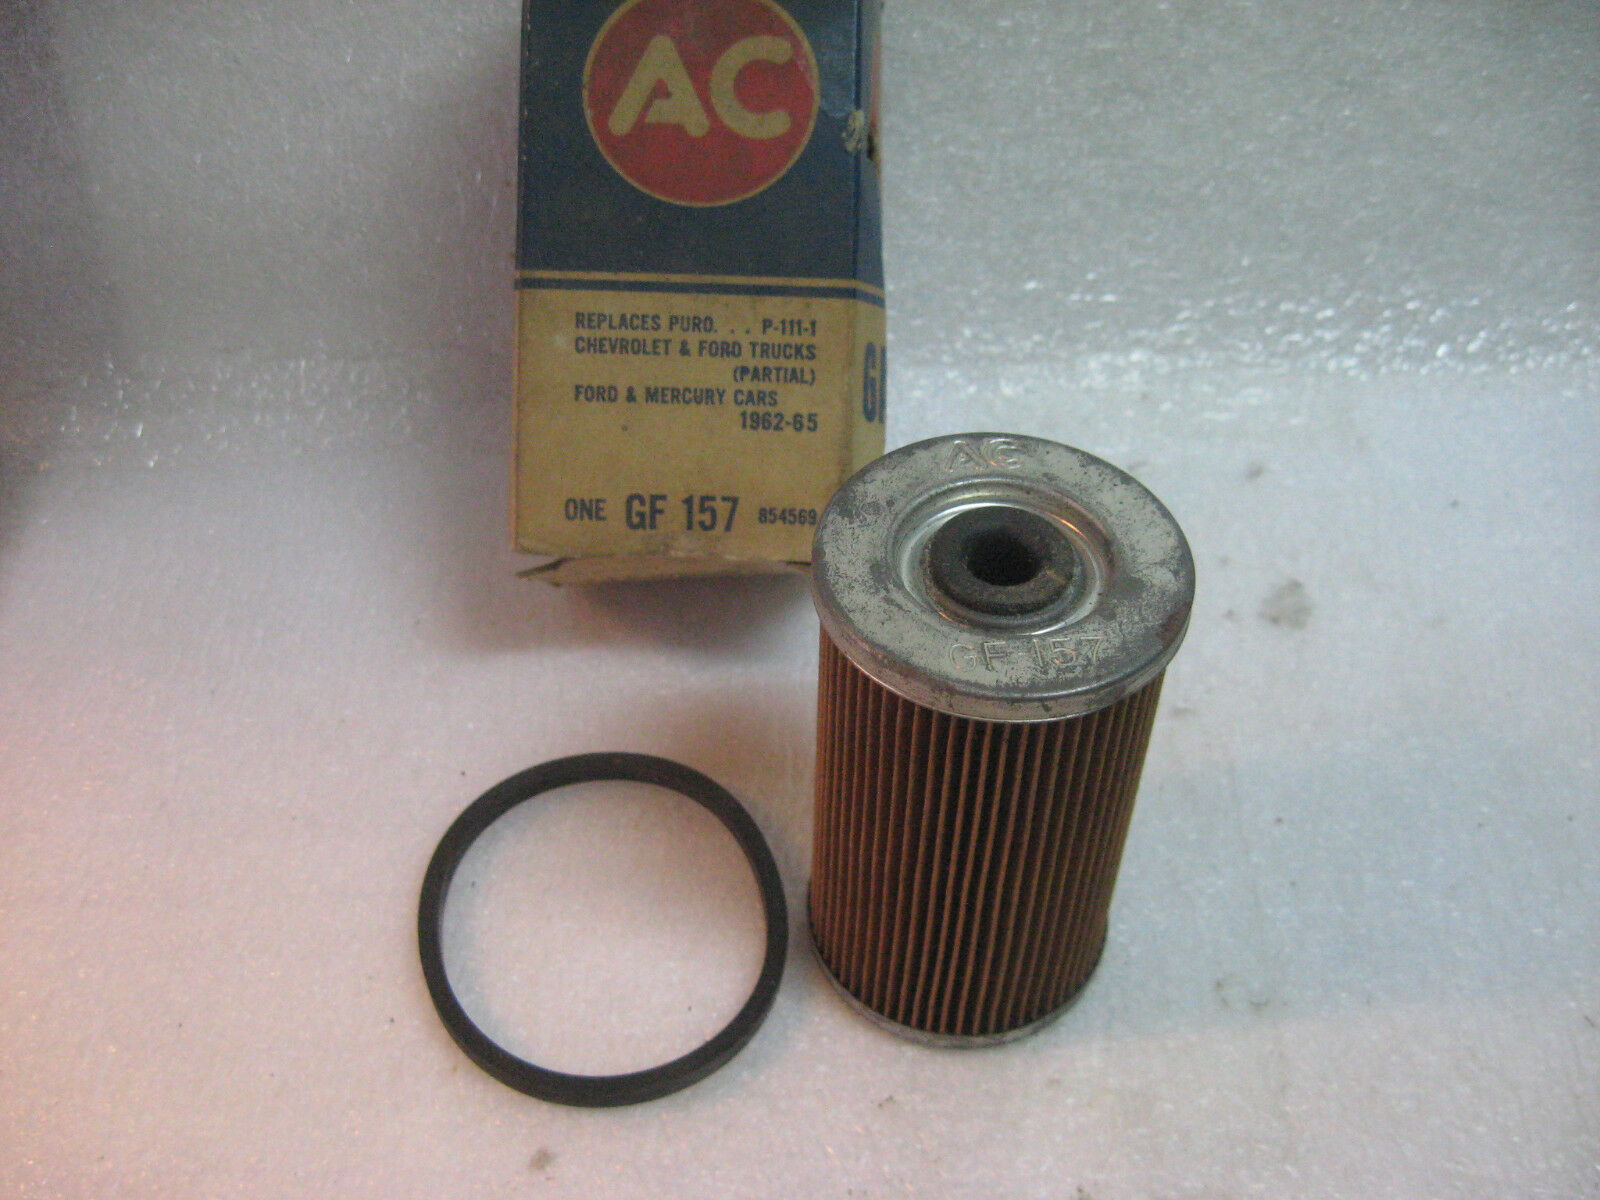 Vintage Ac Gf 157 Fuel Filter 62 65 Ford Car And Chevrolet Filters 1 Of 2only Available